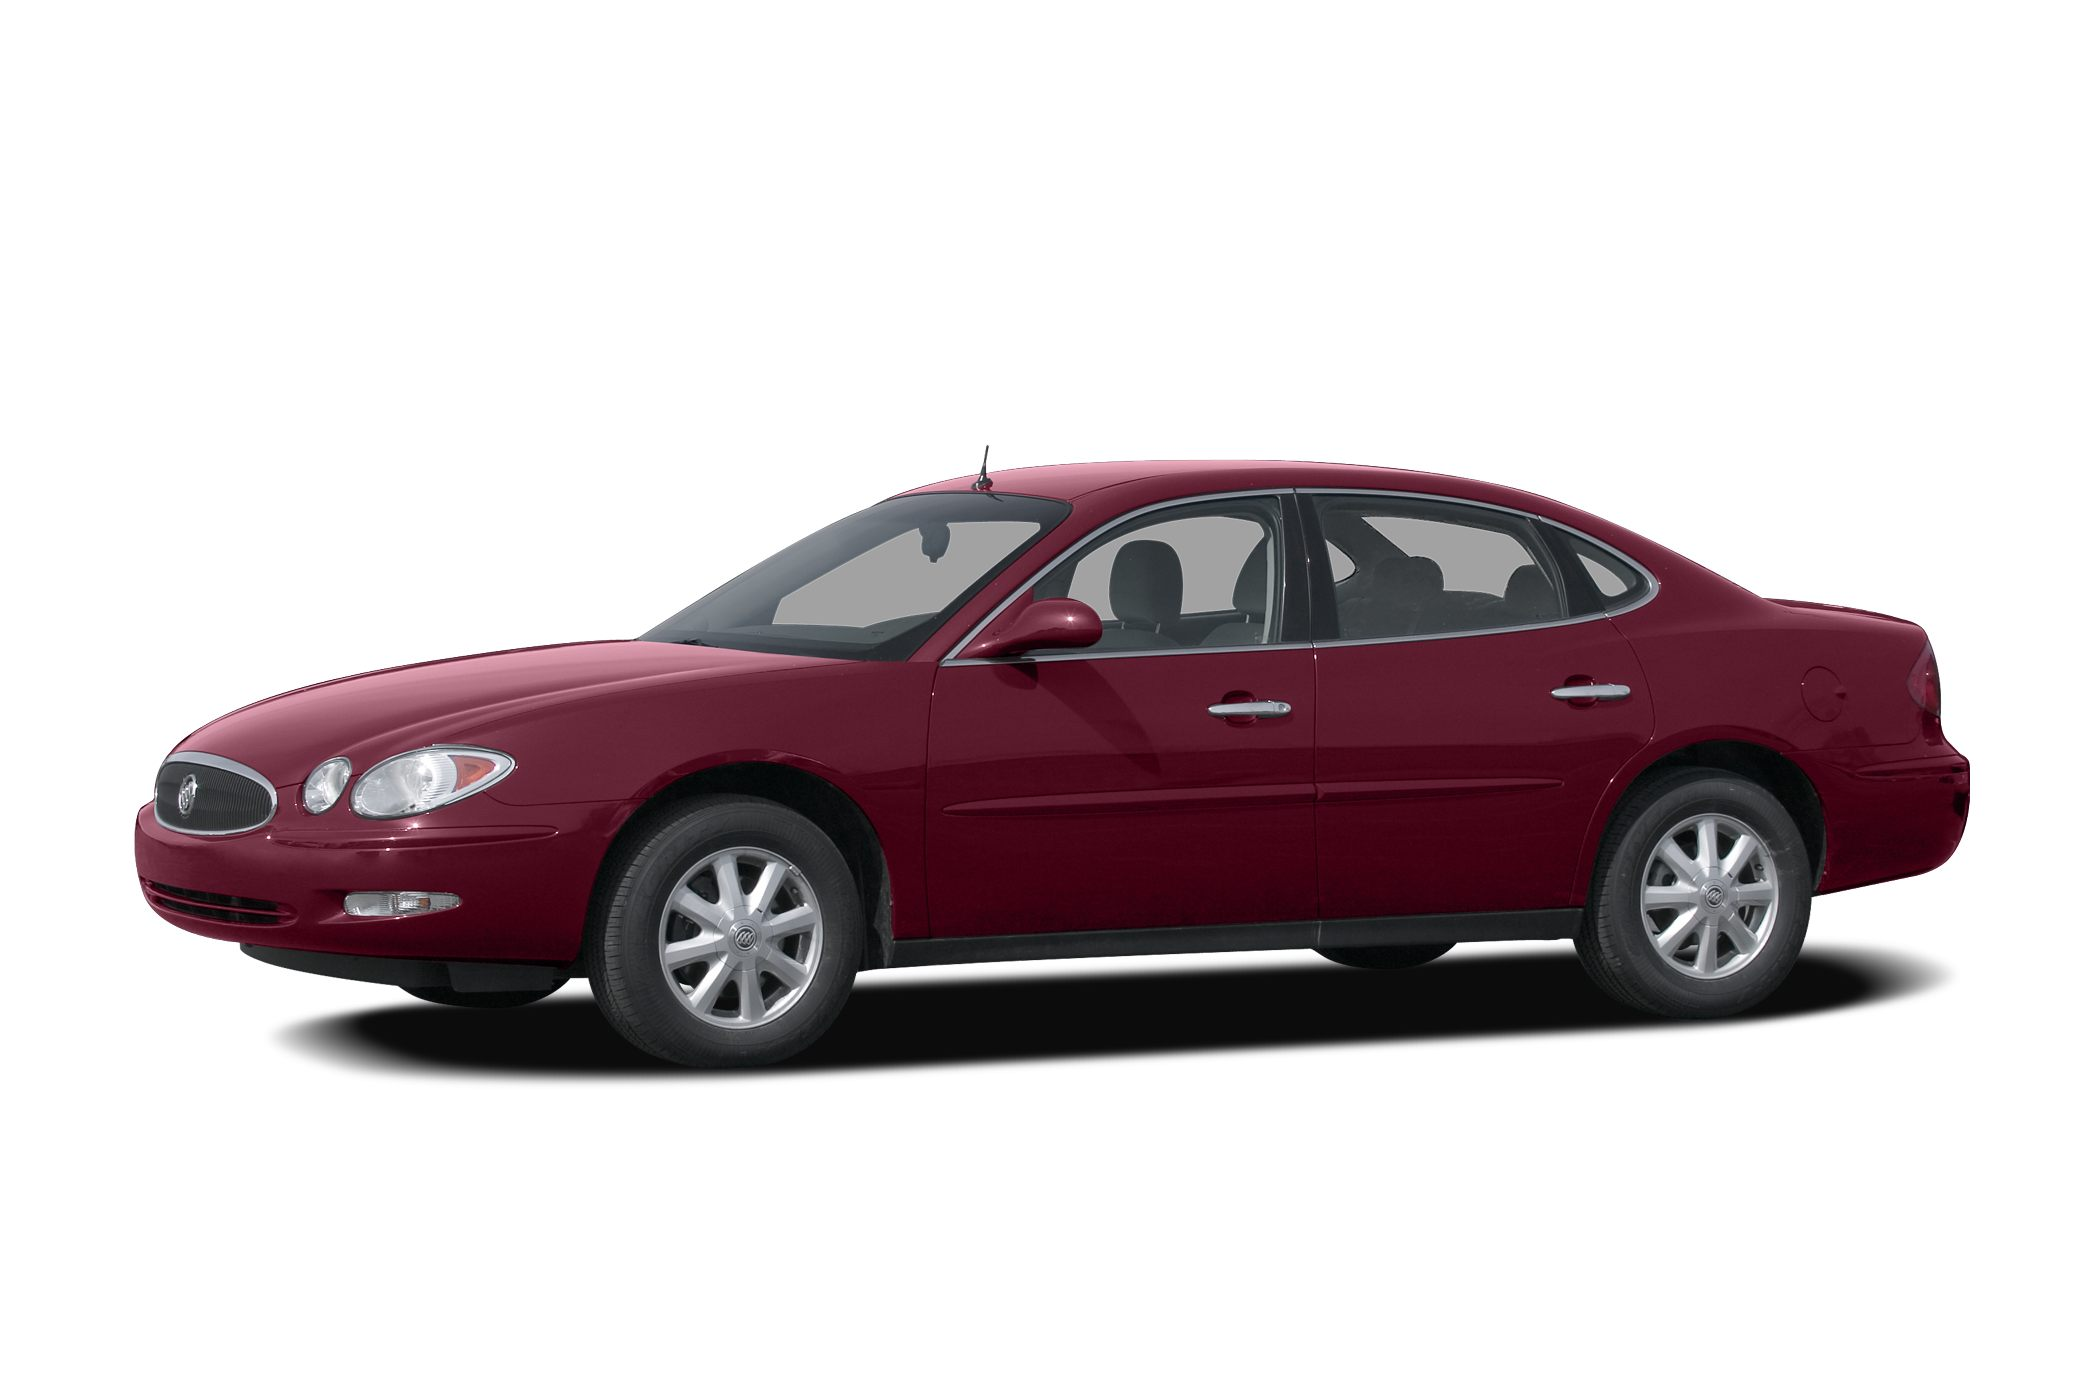 2008 Buick LaCrosse CXL LaCrosse CXL One owner cream puff Smooth as silk Want to save some mone